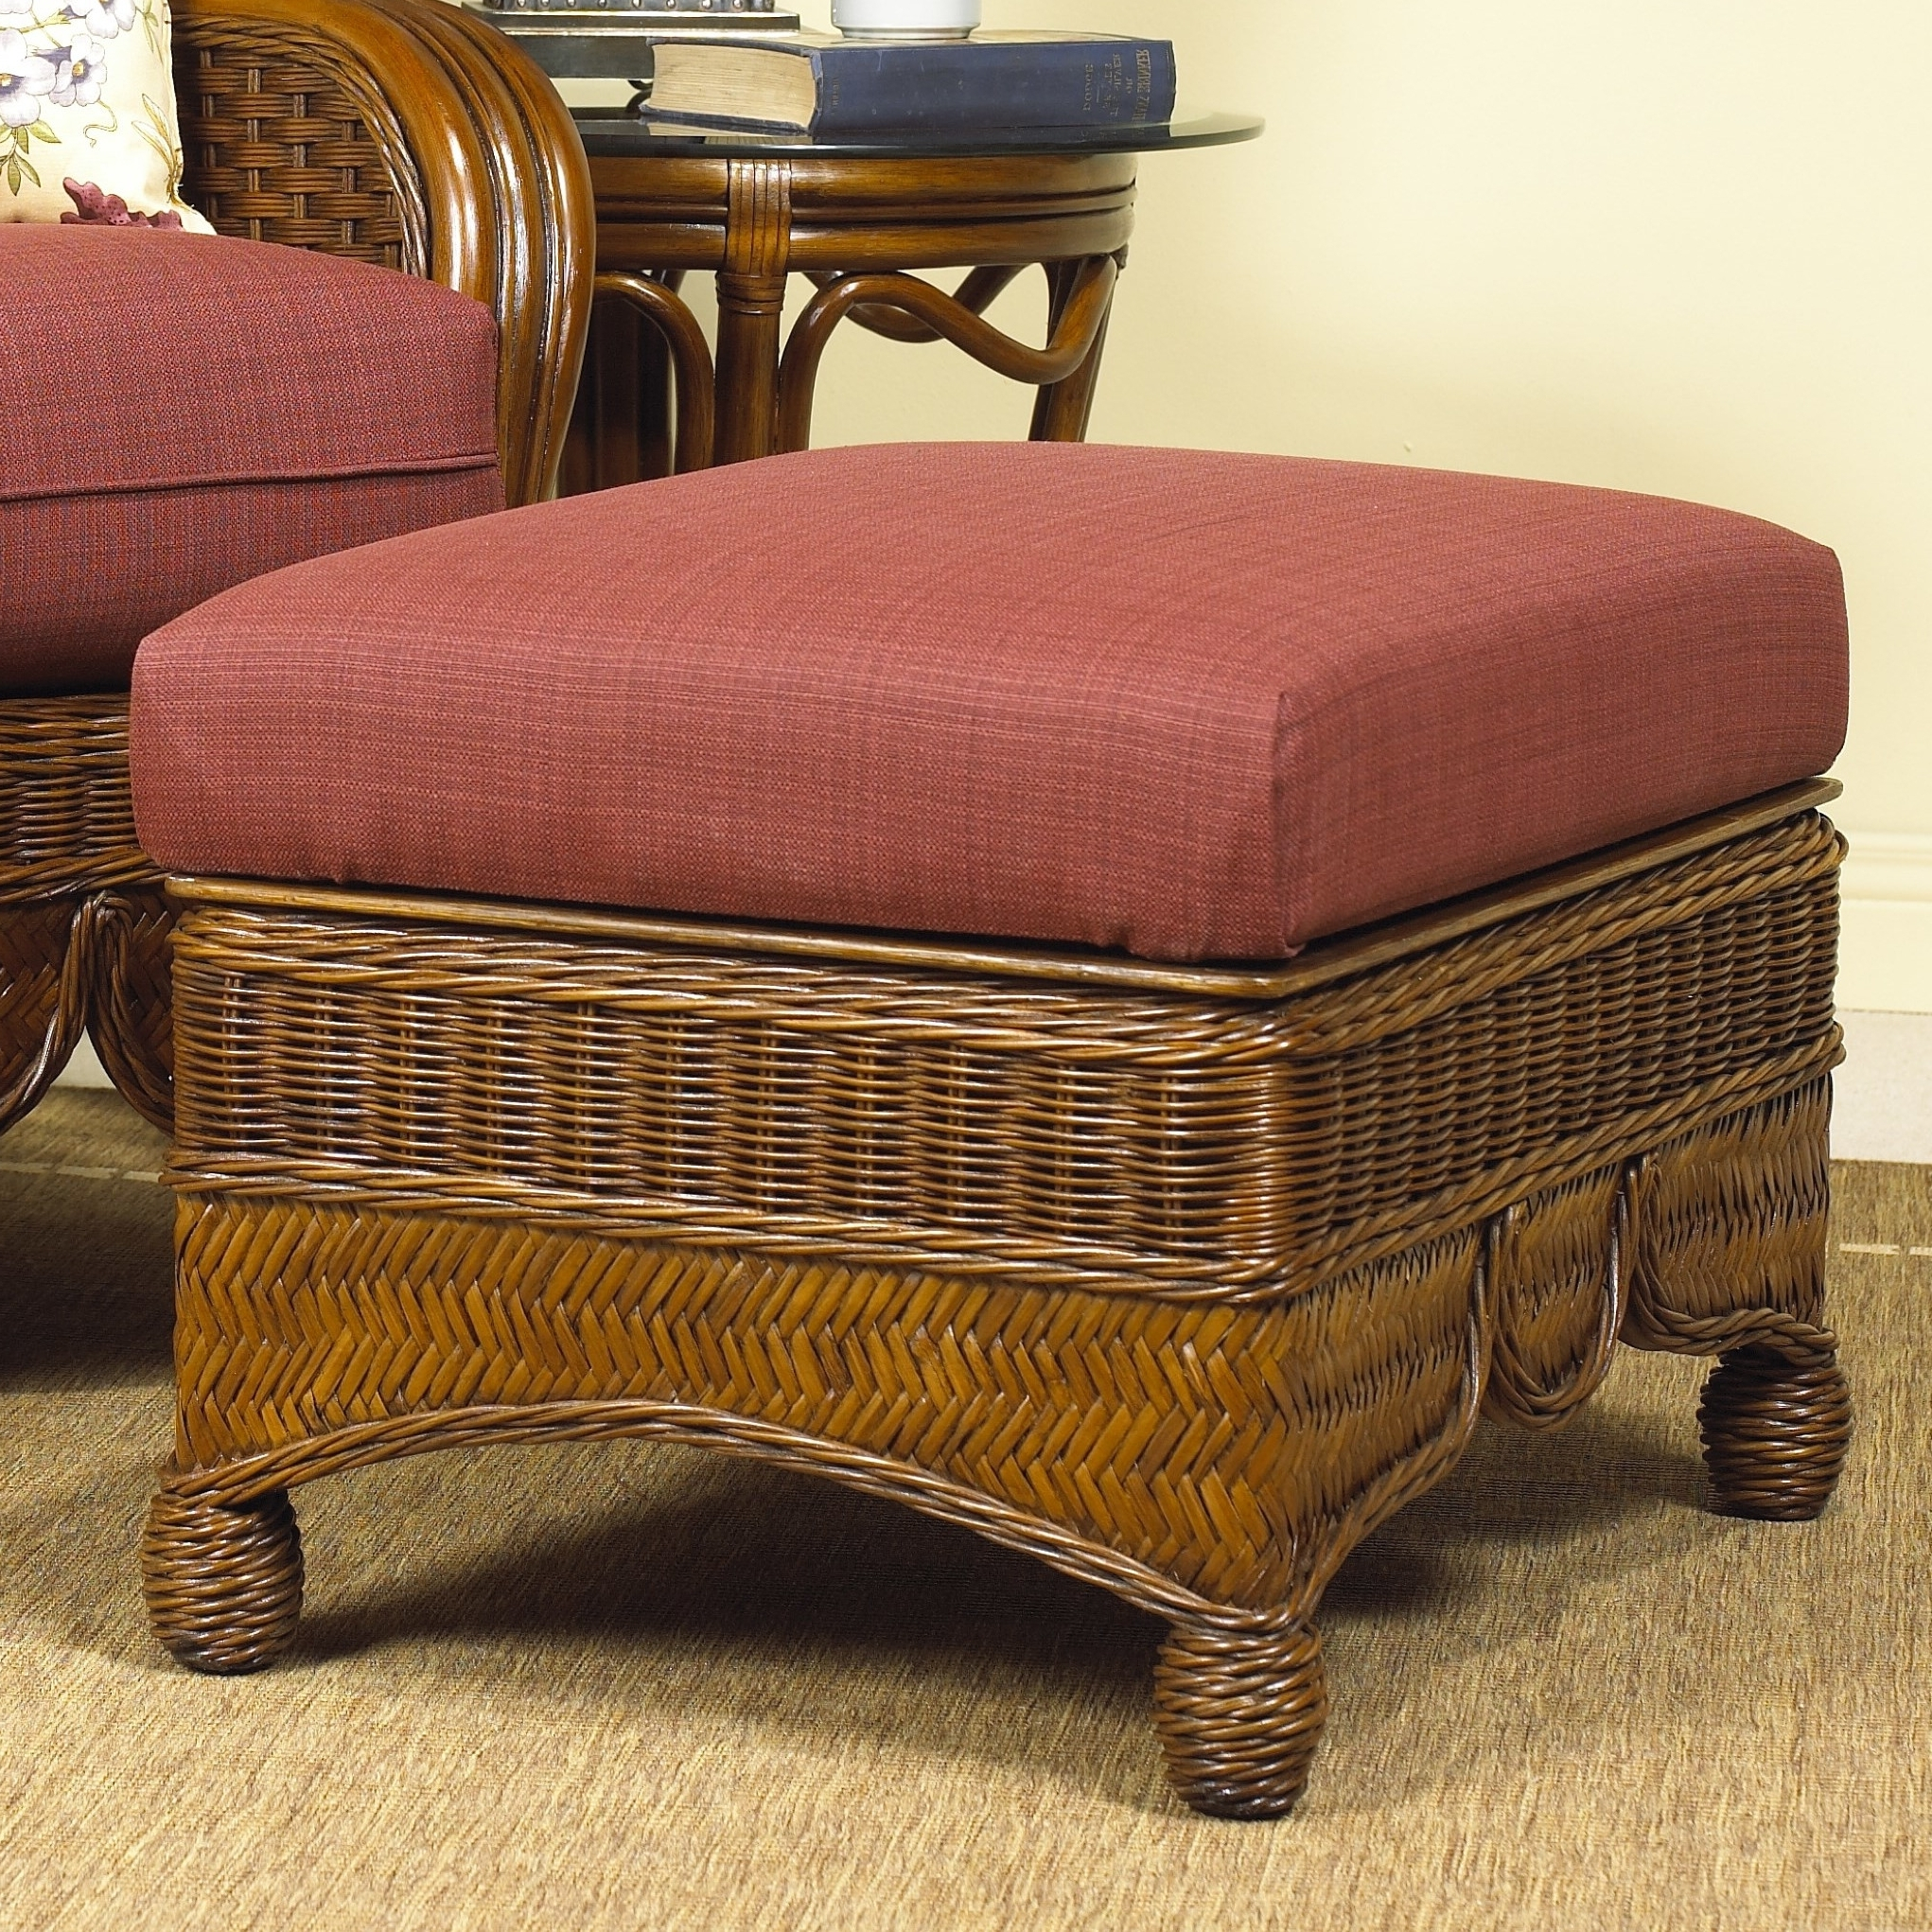 Pier One Imports Wicker Furniture | Pier 1 Wicker Chairs | Pier One Wicker Furniture